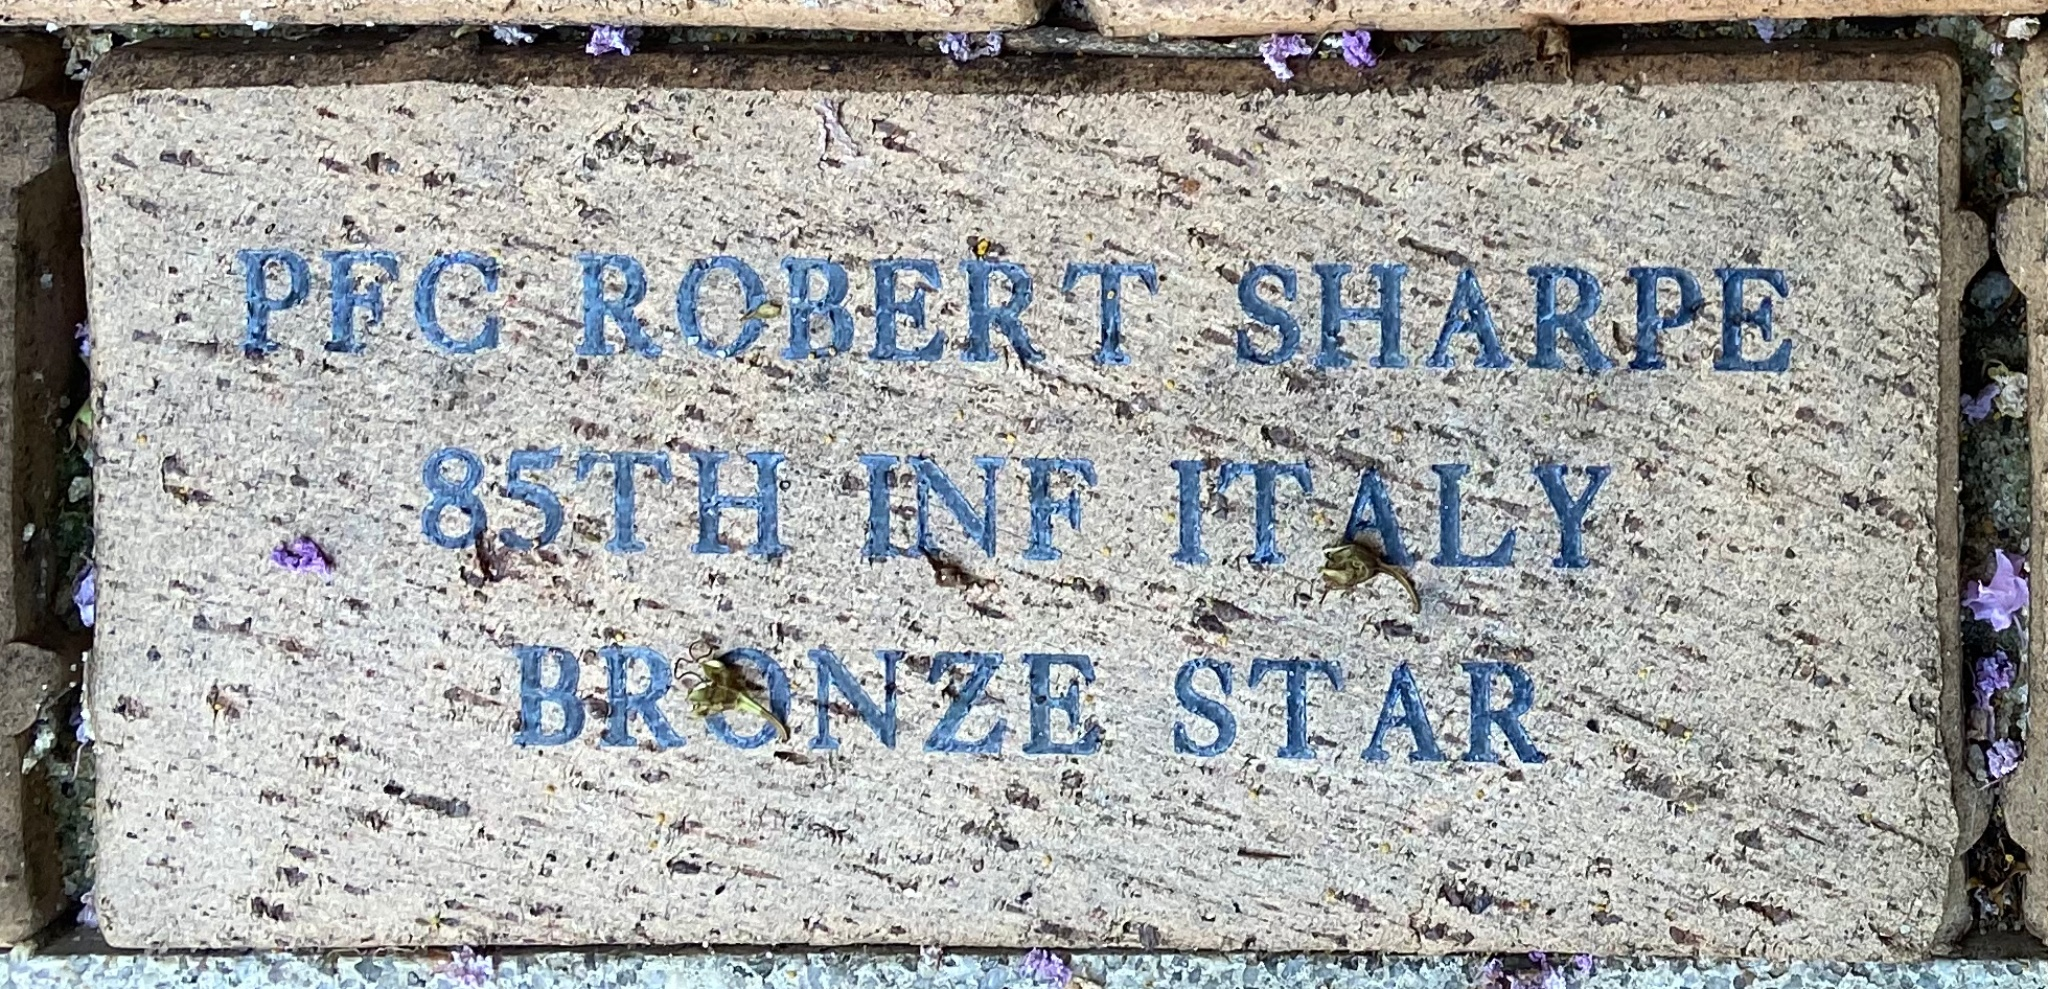 PFC ROBERT SHARPE 85TH INF ITALY BRONZE STAR